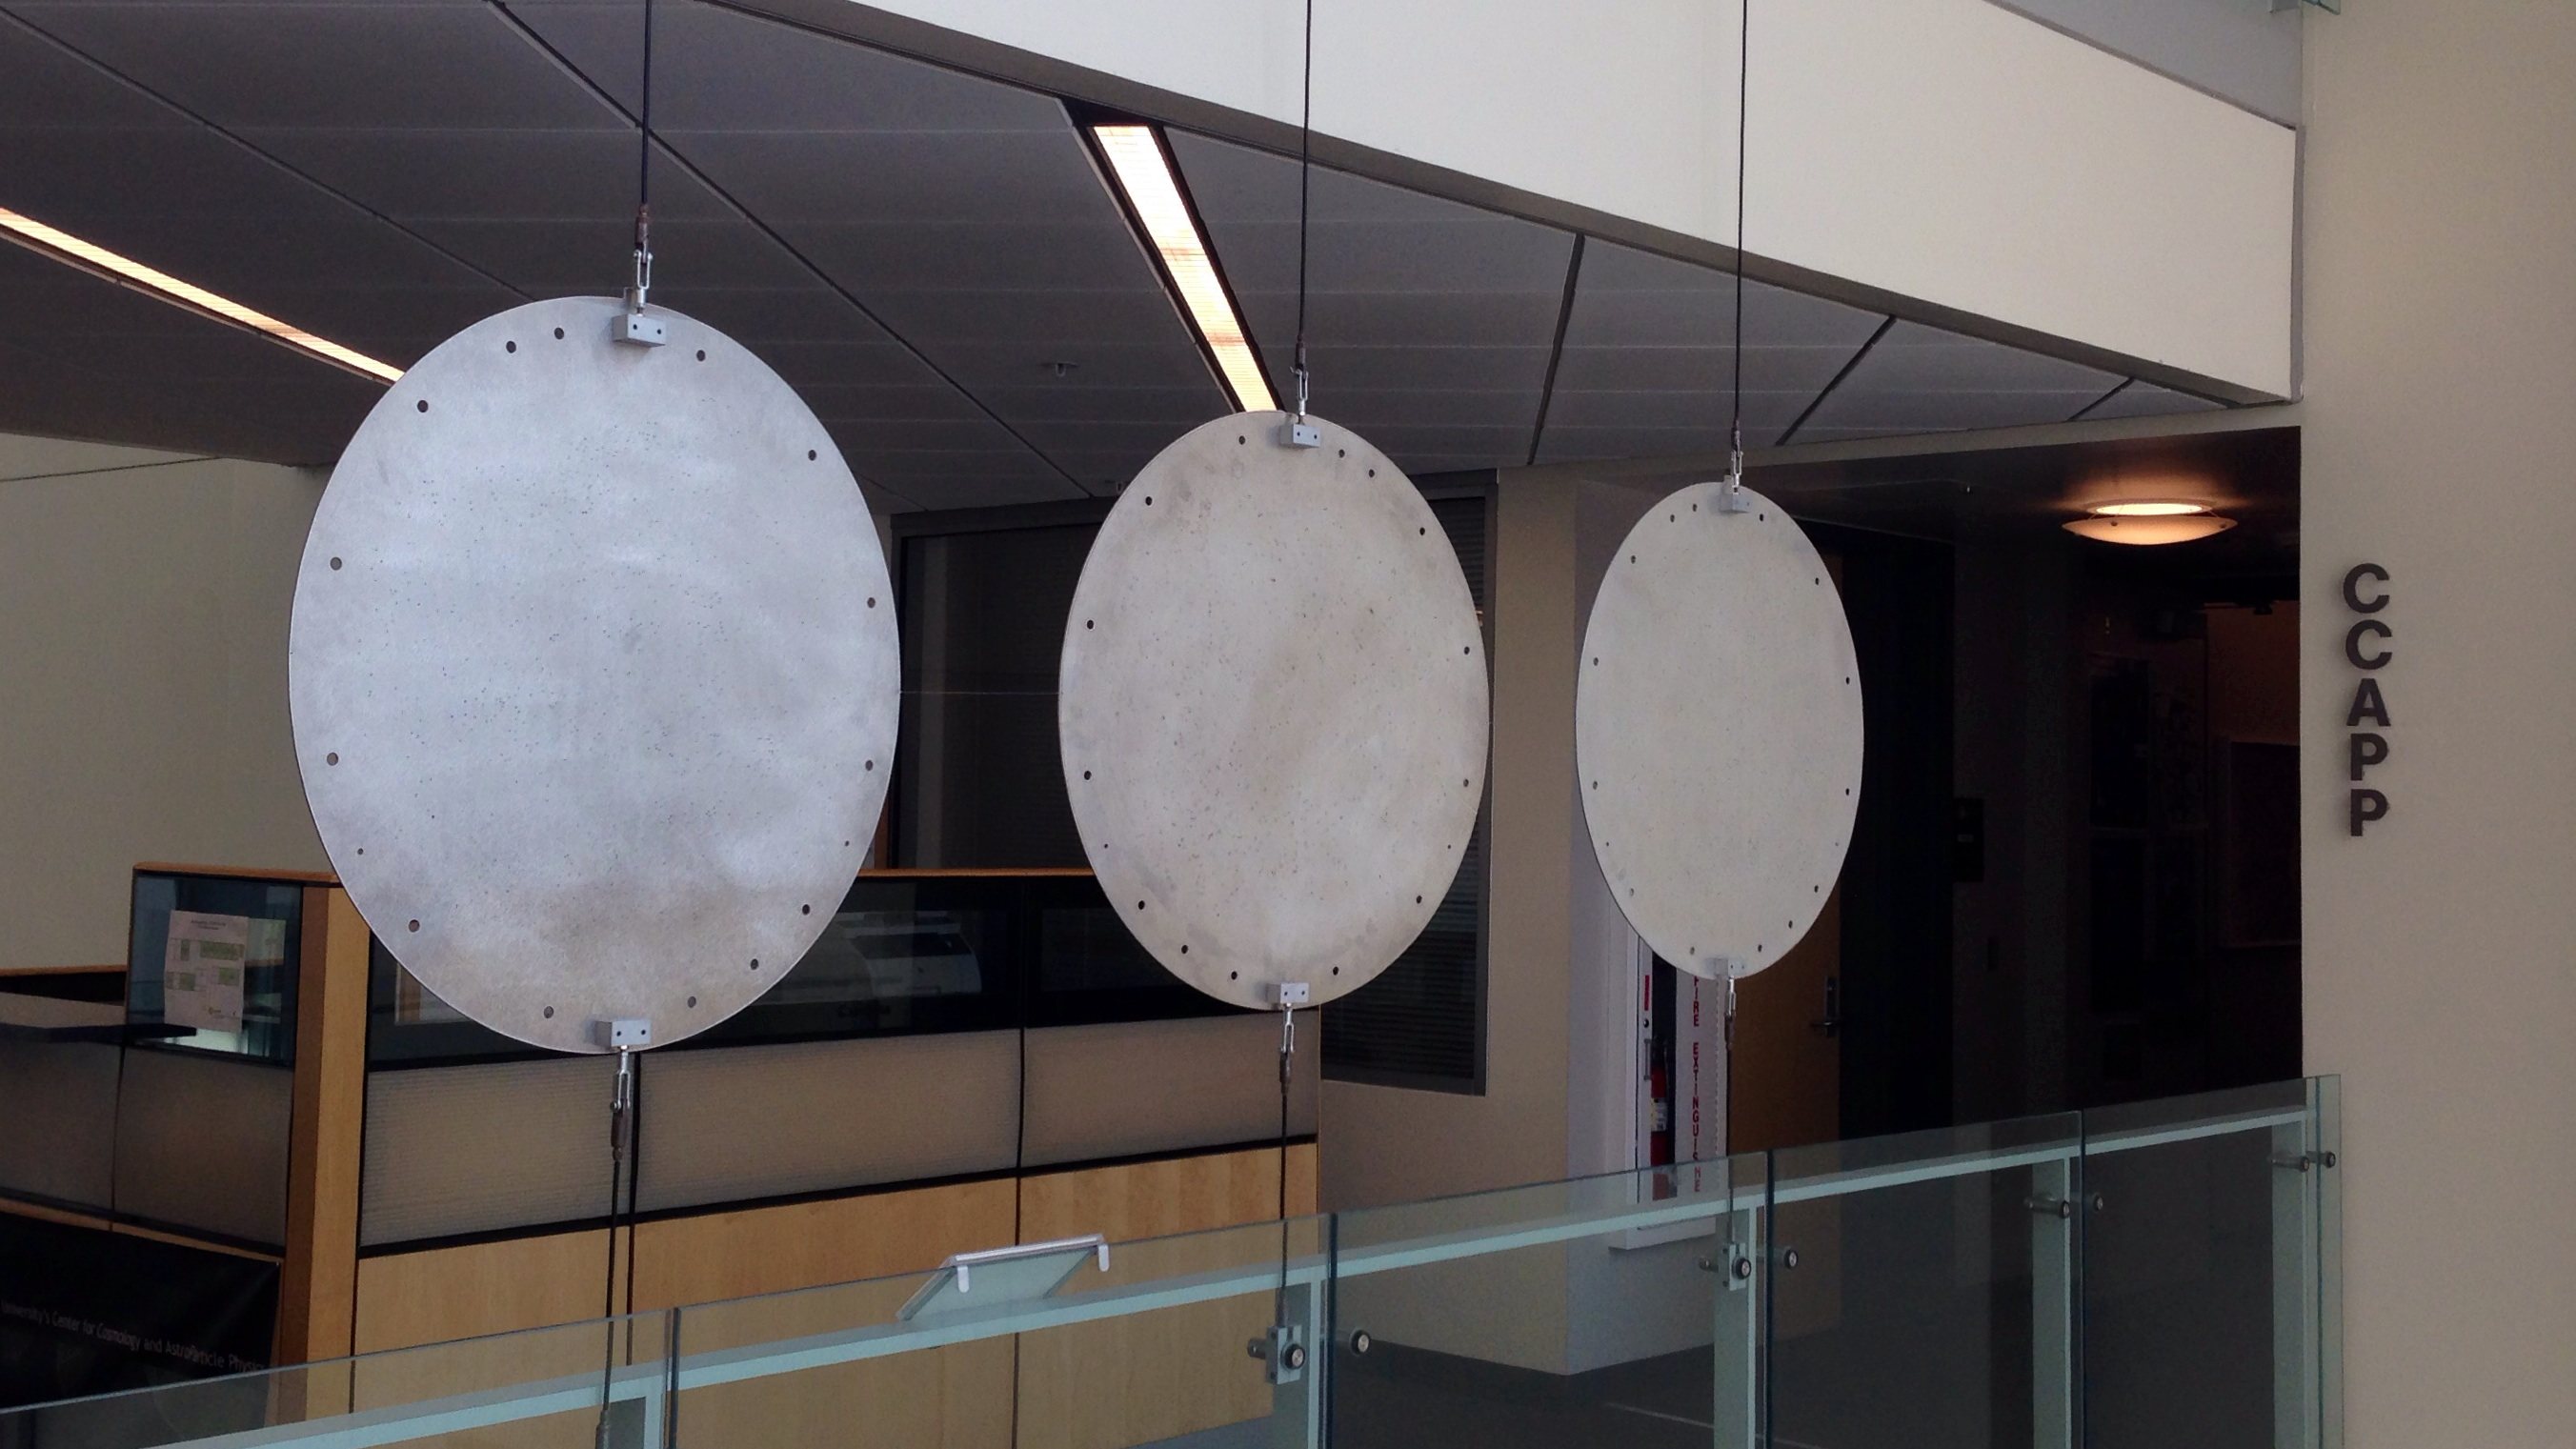 SDSS plates on display at CCAPP (Center for Cosmology and Astrophysics), Ohio State University. Image credit: Qingqing Mao.